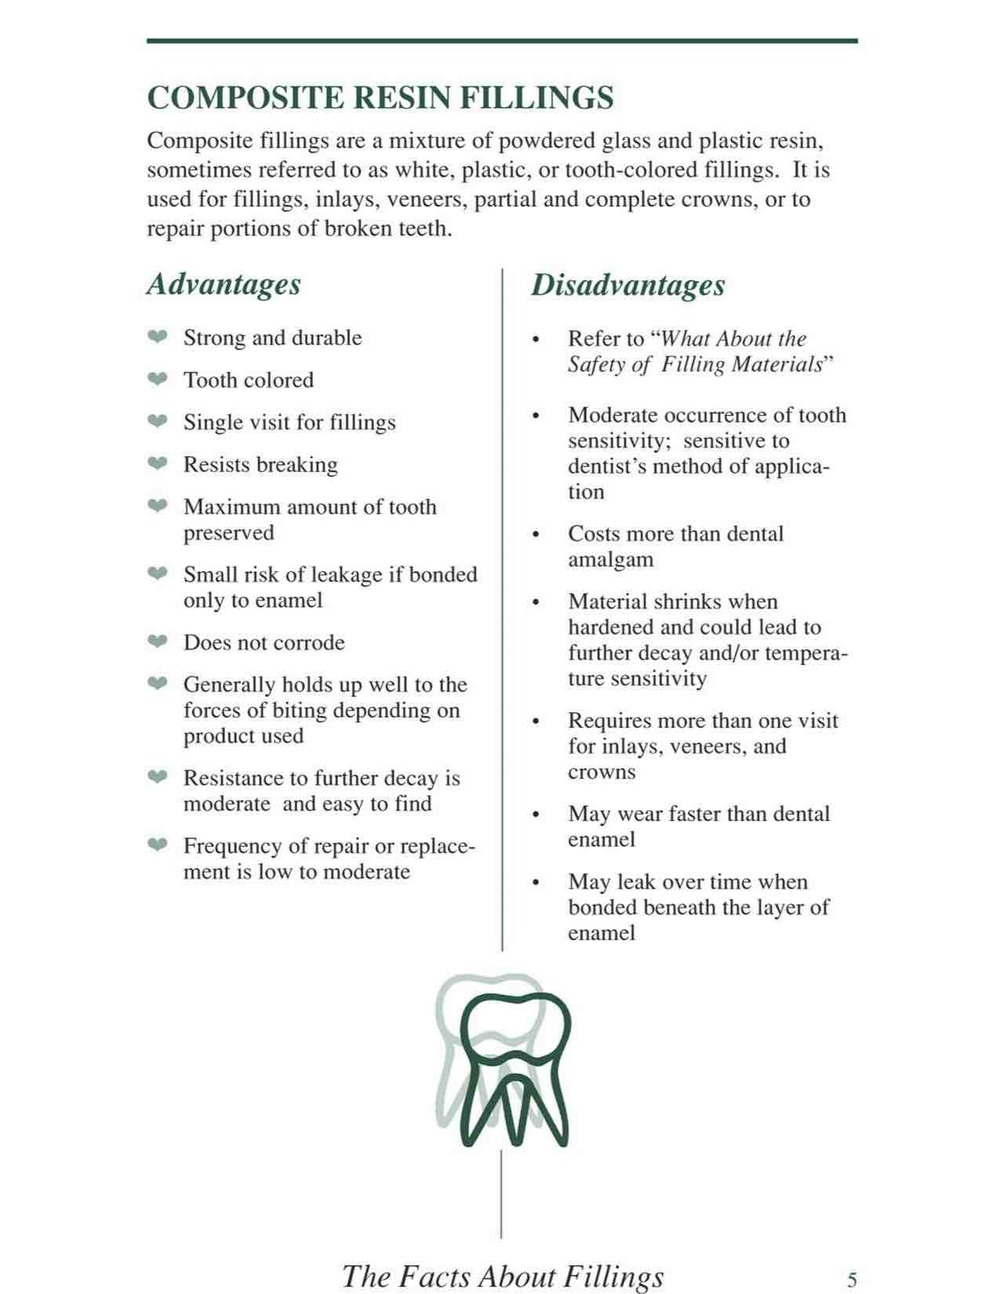 Dental Materials Fact Sheet-5.jpg